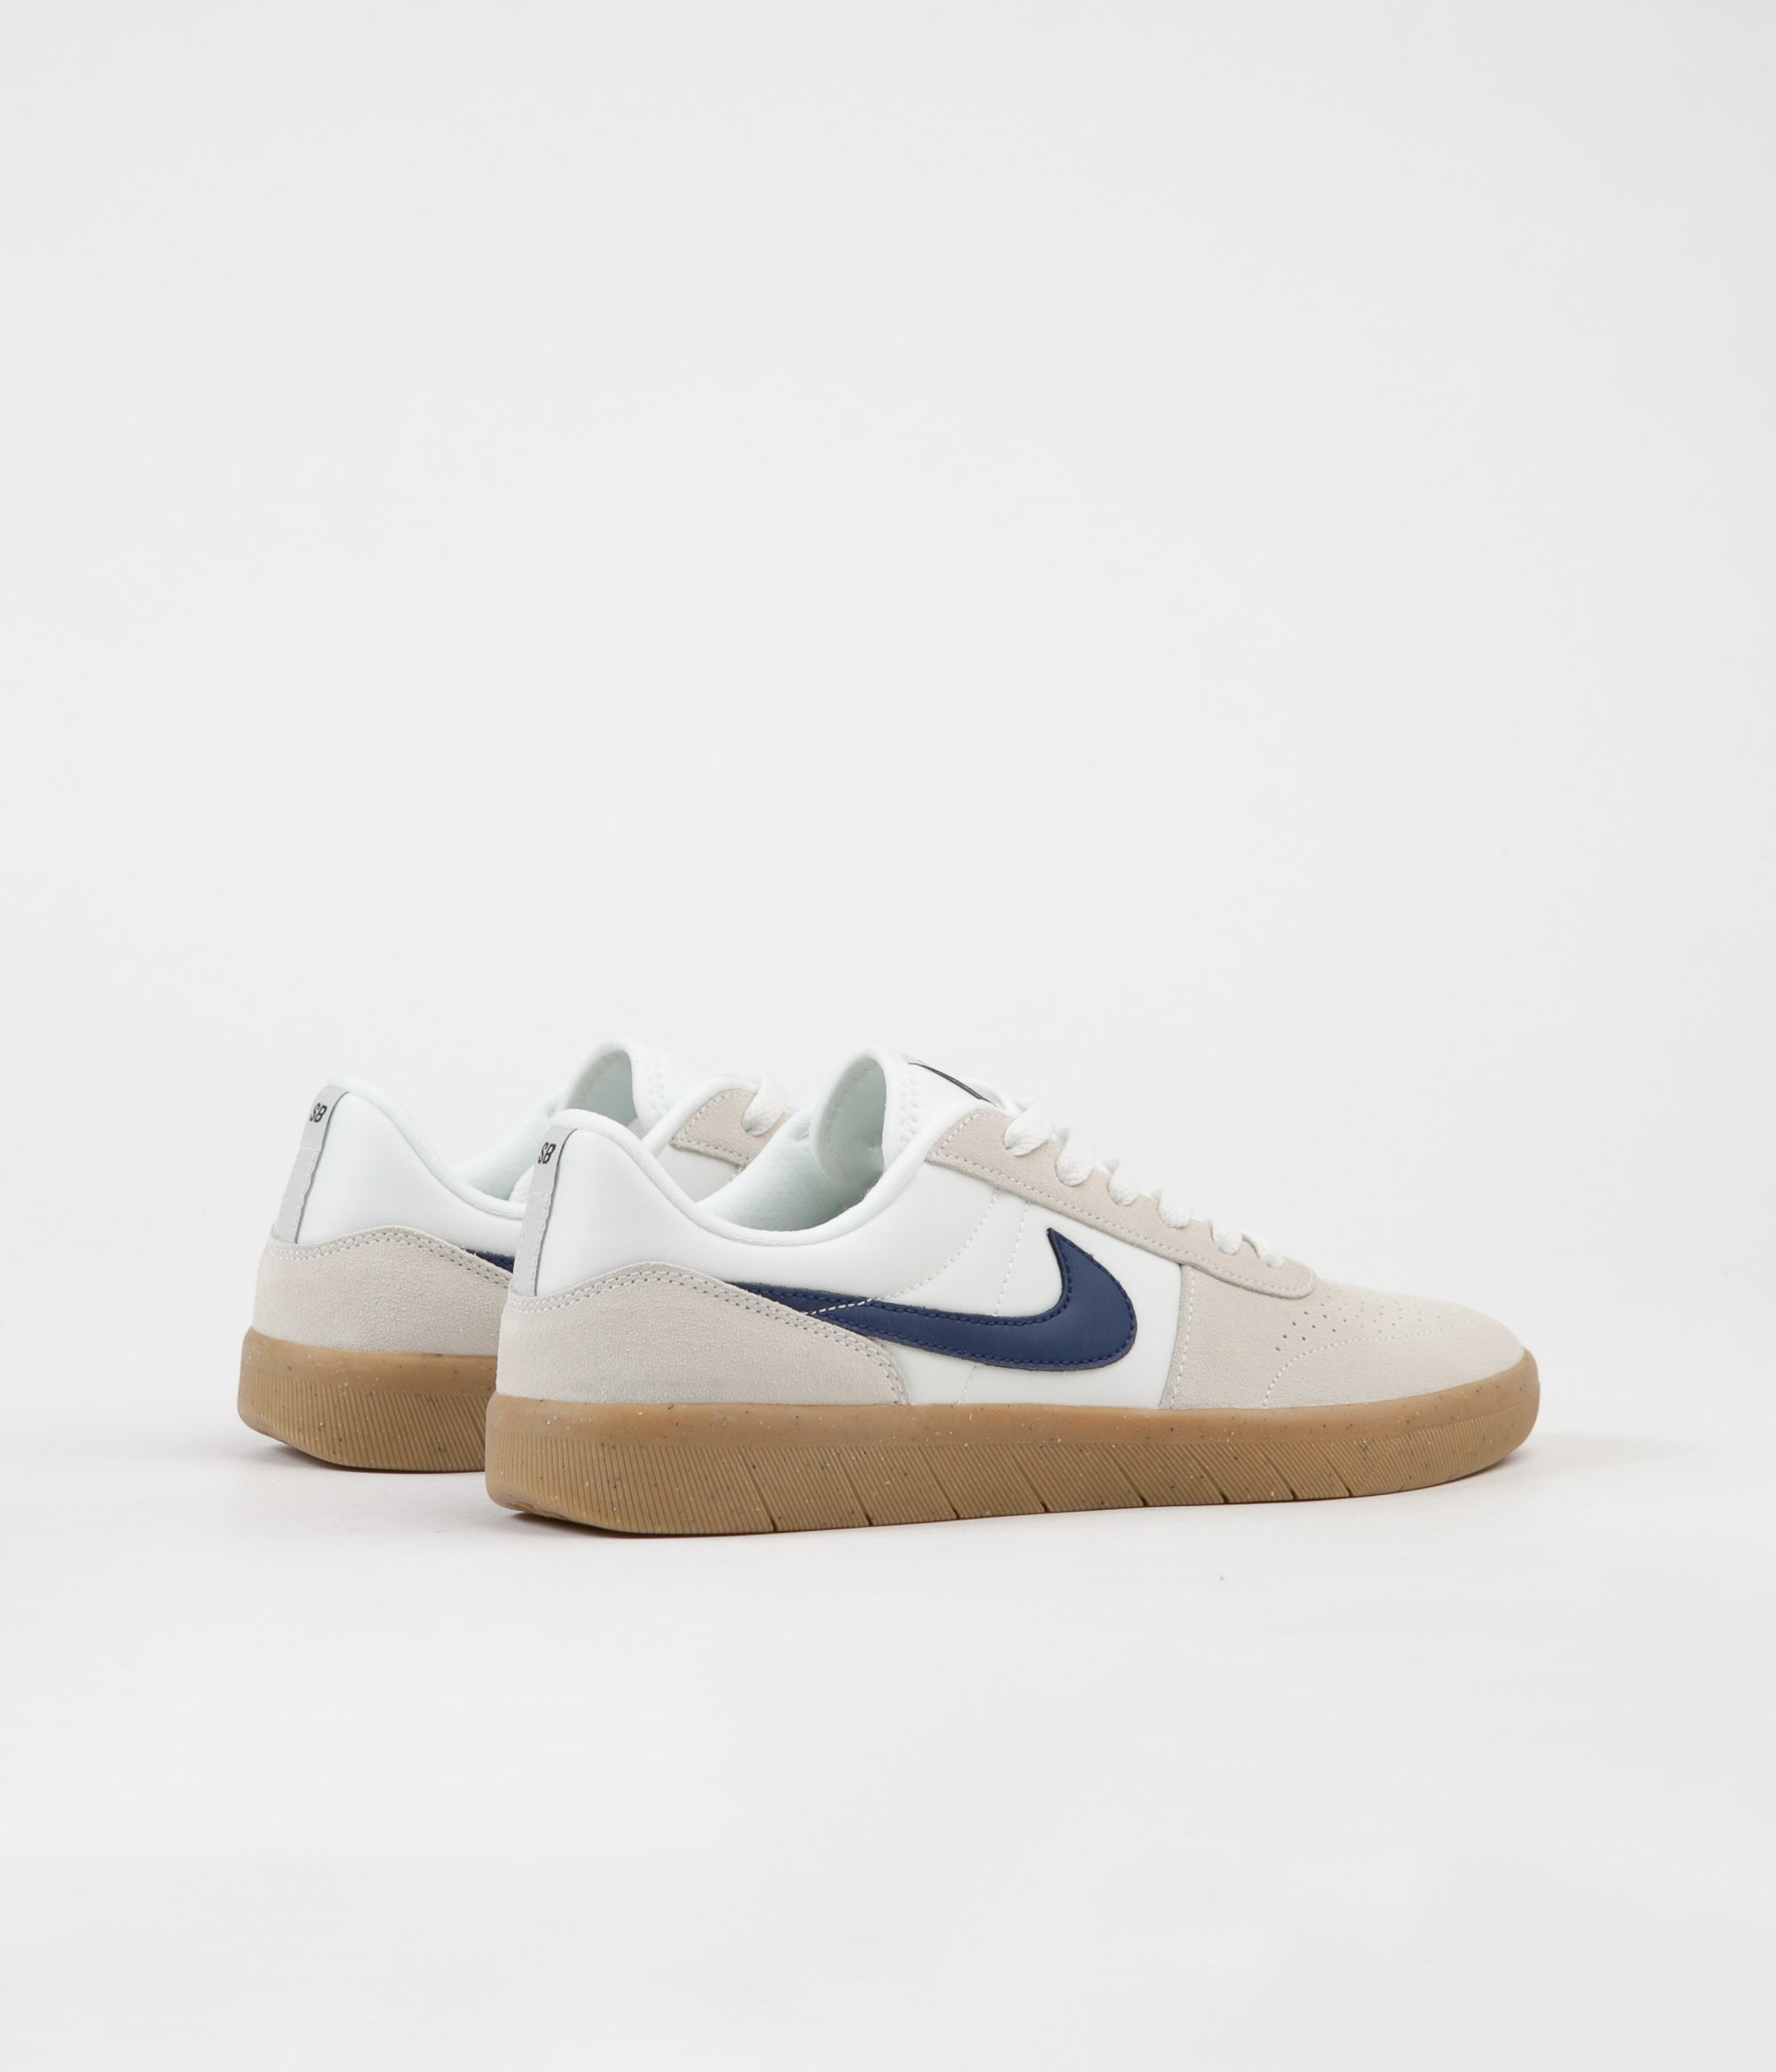 580ce08bbba2f3 ... Nike SB Team Classic Shoes - Summit White   Blue Void - White ...